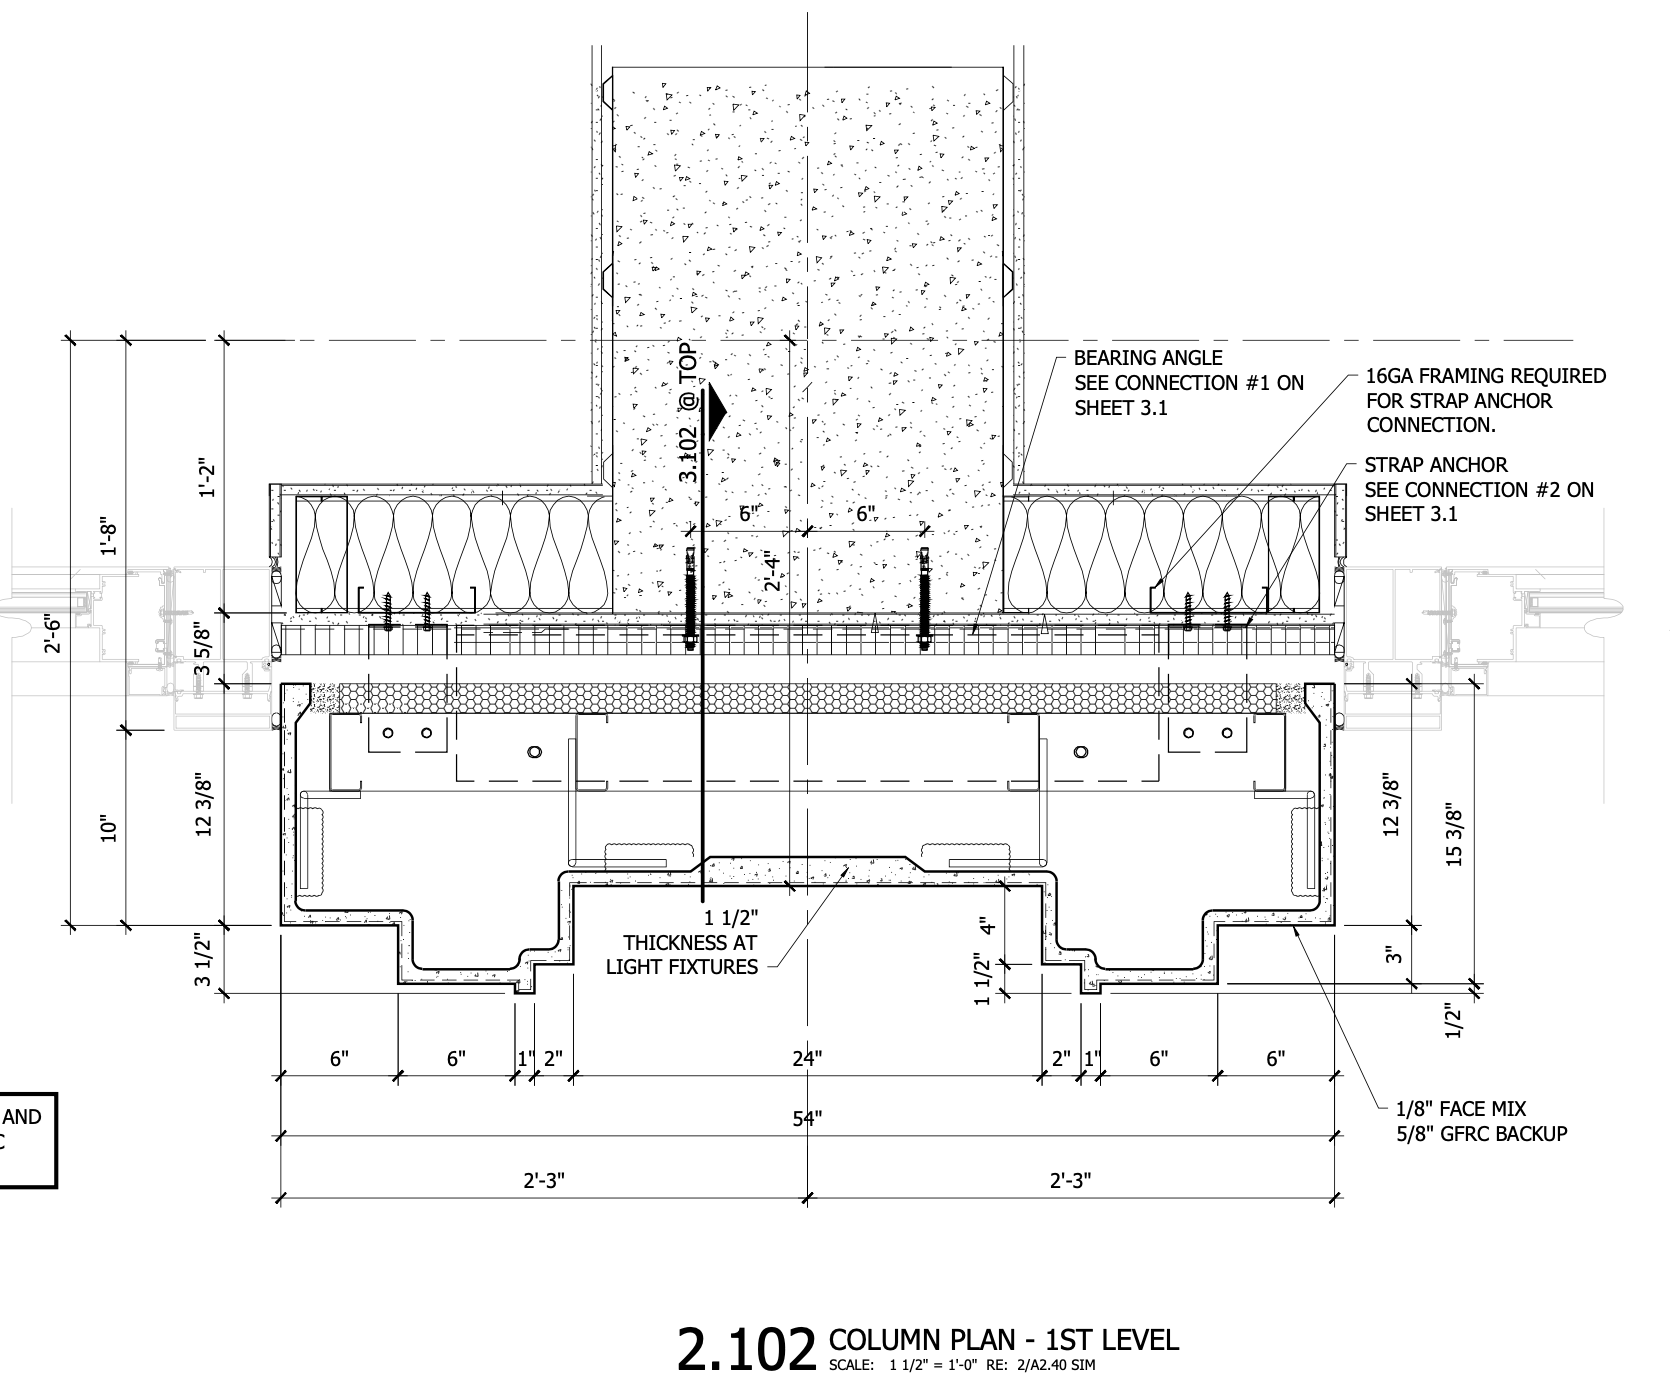 Marriott Hotel CAD Drawing - Section 2_105 - column plan - 1st level